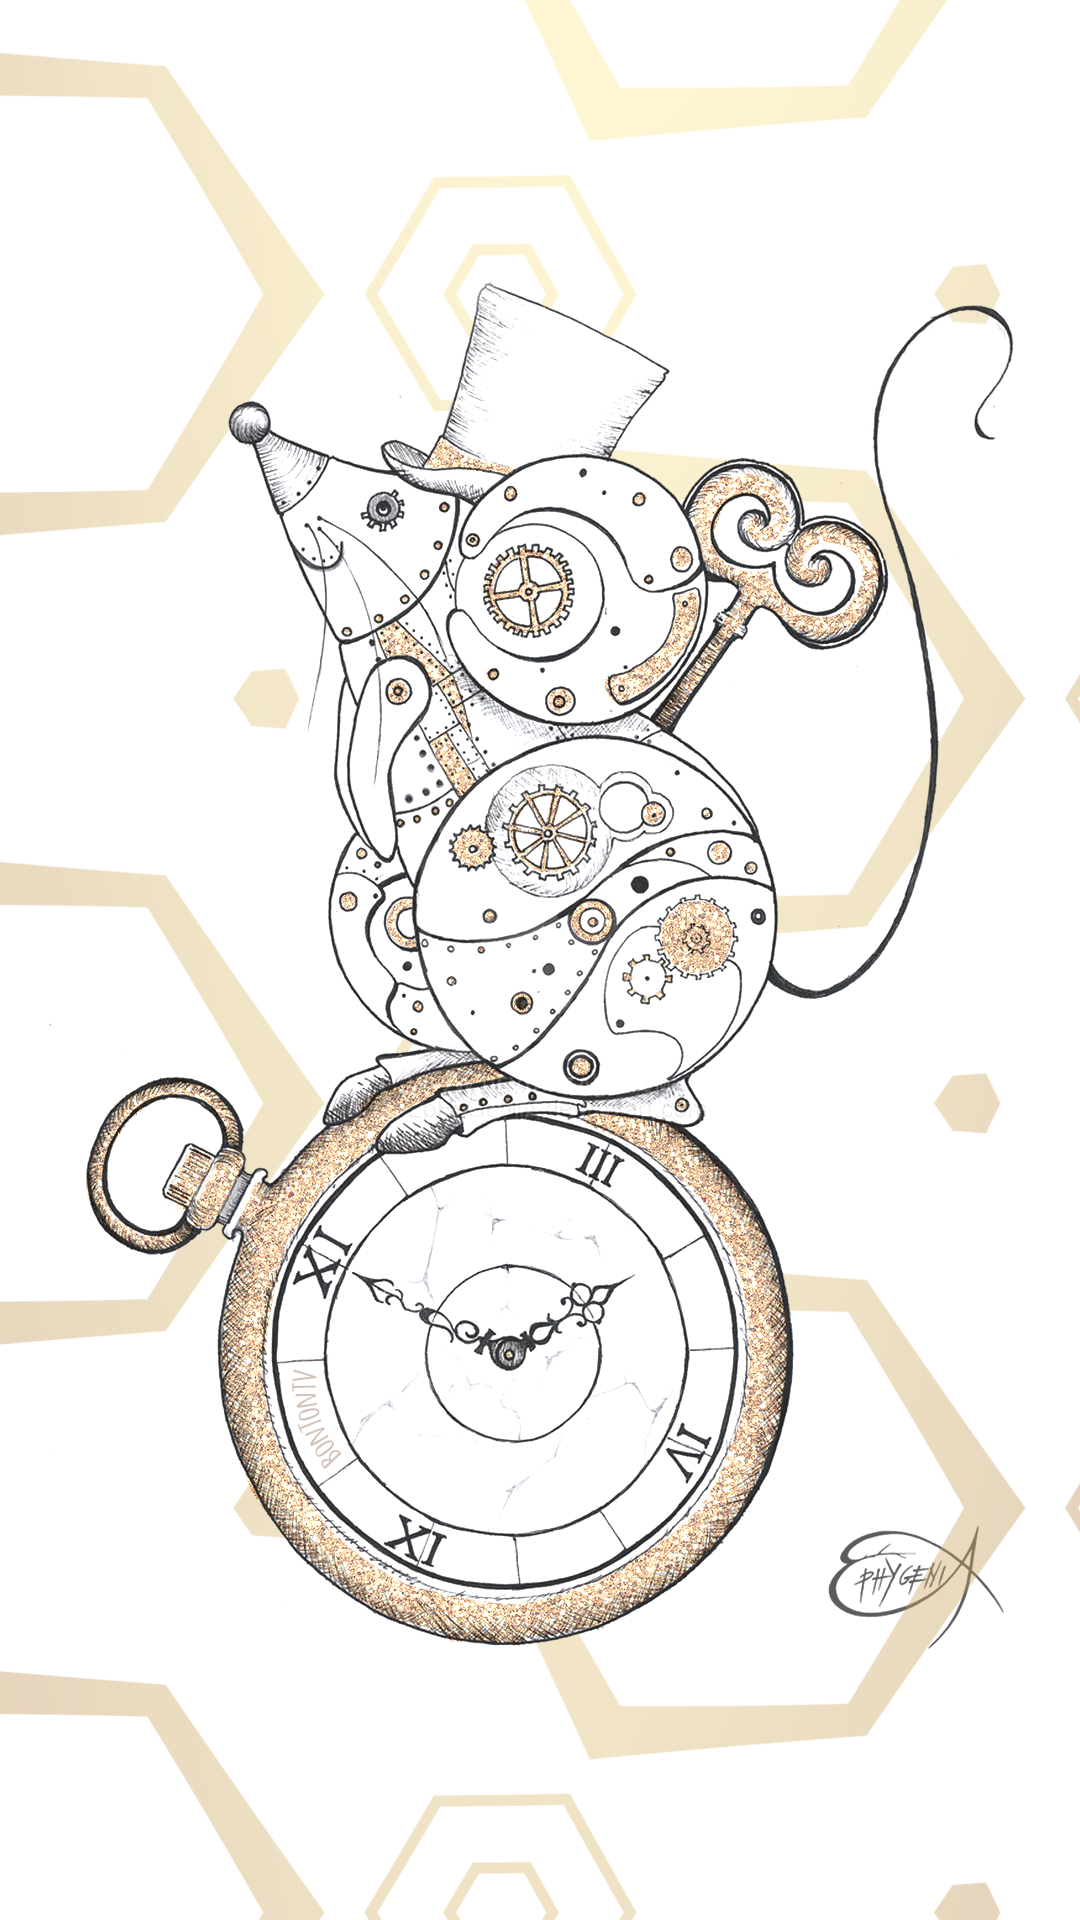 Phone Wallpapers Hd Gold Clockwork Mouse Steampunk By Bonton Tv Free Backgrounds 1080x1920 Wa Steampunk Iphone Wallpaper Iphone Wallpaper Phone Wallpaper